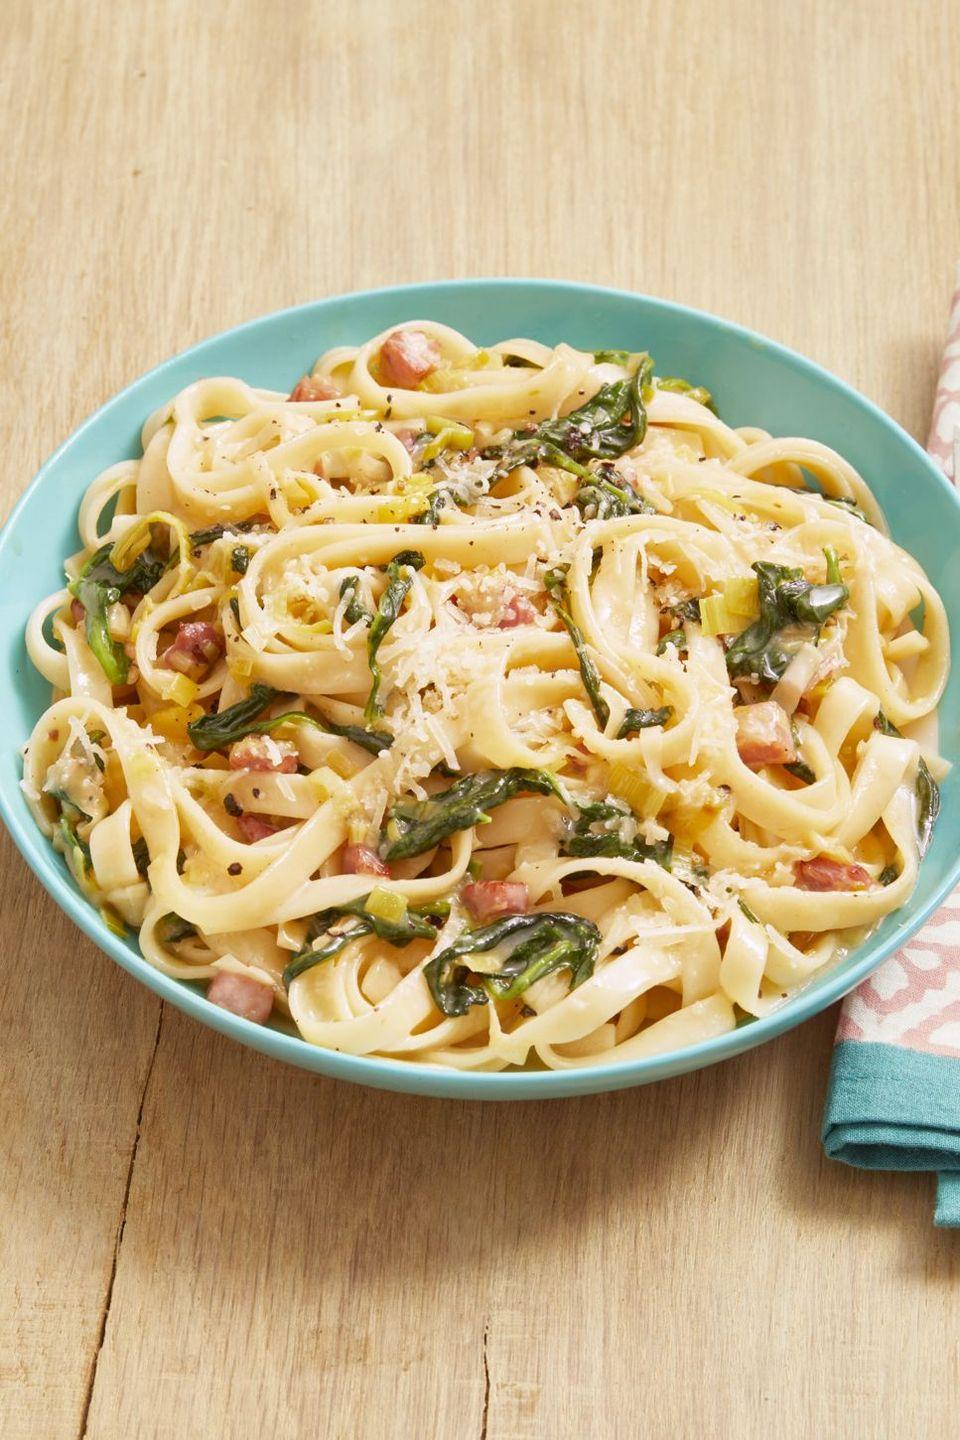 """<p>Instead of serving ham as the main course, sneak it into a tasty pasta dish instead.</p><p><strong><a href=""""https://www.thepioneerwoman.com/food-cooking/recipes/a32477234/pasta-with-ham-leeks-and-spinach-recipe/"""" rel=""""nofollow noopener"""" target=""""_blank"""" data-ylk=""""slk:Get the recipe."""" class=""""link rapid-noclick-resp"""">Get the recipe.</a></strong></p><p><a class=""""link rapid-noclick-resp"""" href=""""https://go.redirectingat.com?id=74968X1596630&url=https%3A%2F%2Fwww.walmart.com%2Fbrowse%2Fhome%2Fthe-pioneer-woman-dishes%2F4044_623679_639999_7373615&sref=https%3A%2F%2Fwww.thepioneerwoman.com%2Ffood-cooking%2Fmeals-menus%2Fg35585877%2Feaster-recipes%2F"""" rel=""""nofollow noopener"""" target=""""_blank"""" data-ylk=""""slk:SHOP DISH SETS"""">SHOP DISH SETS</a></p>"""